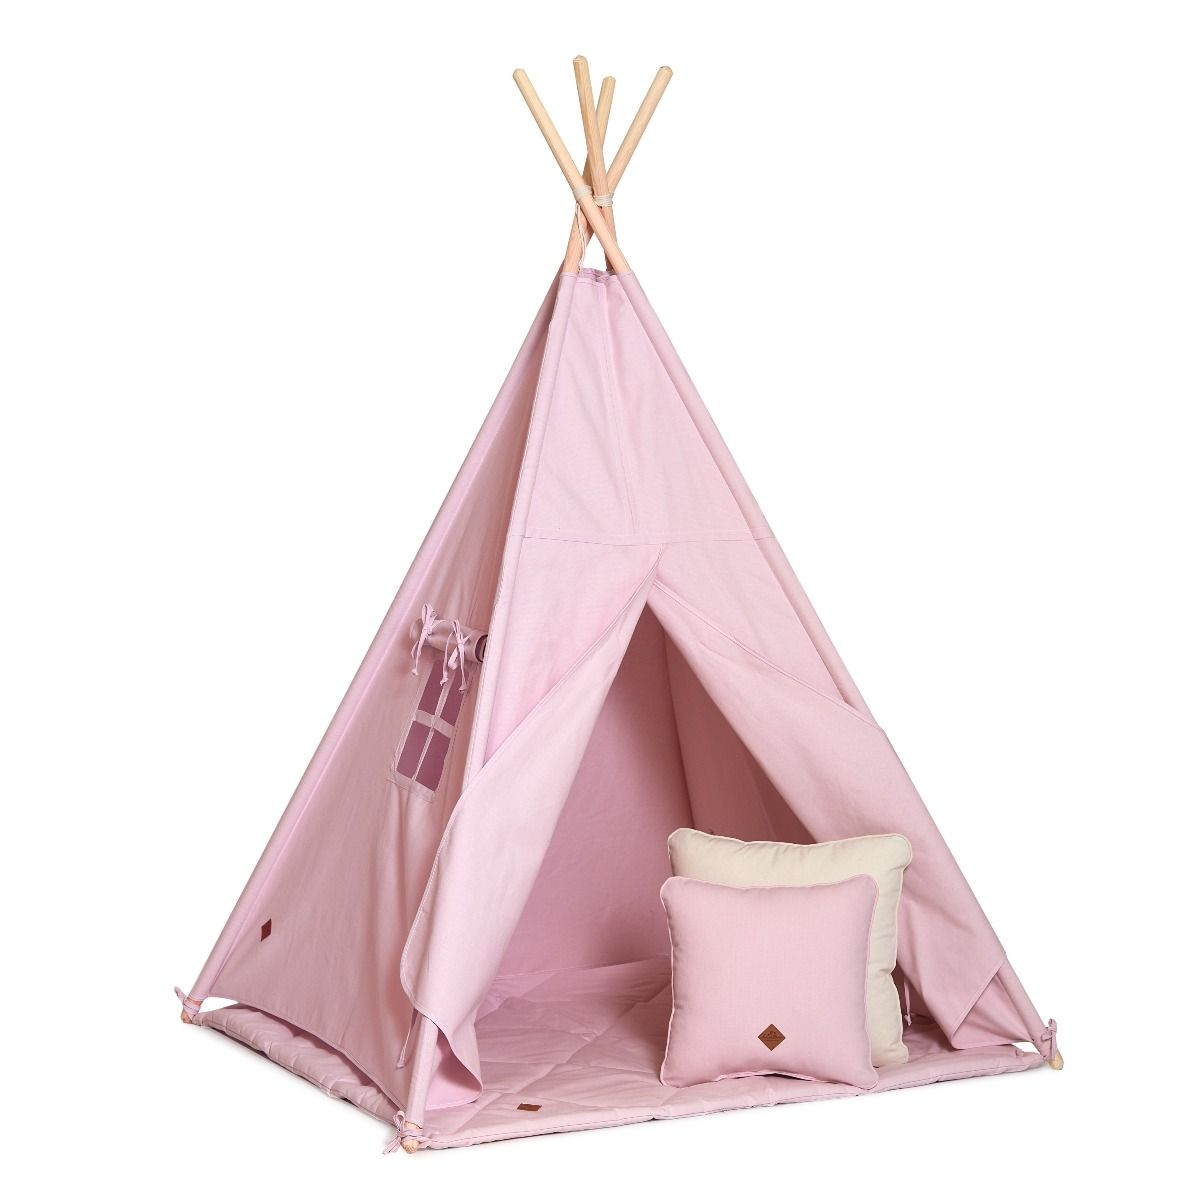 Teepee Tent + Floor Mat + Pillows - Powder Pink